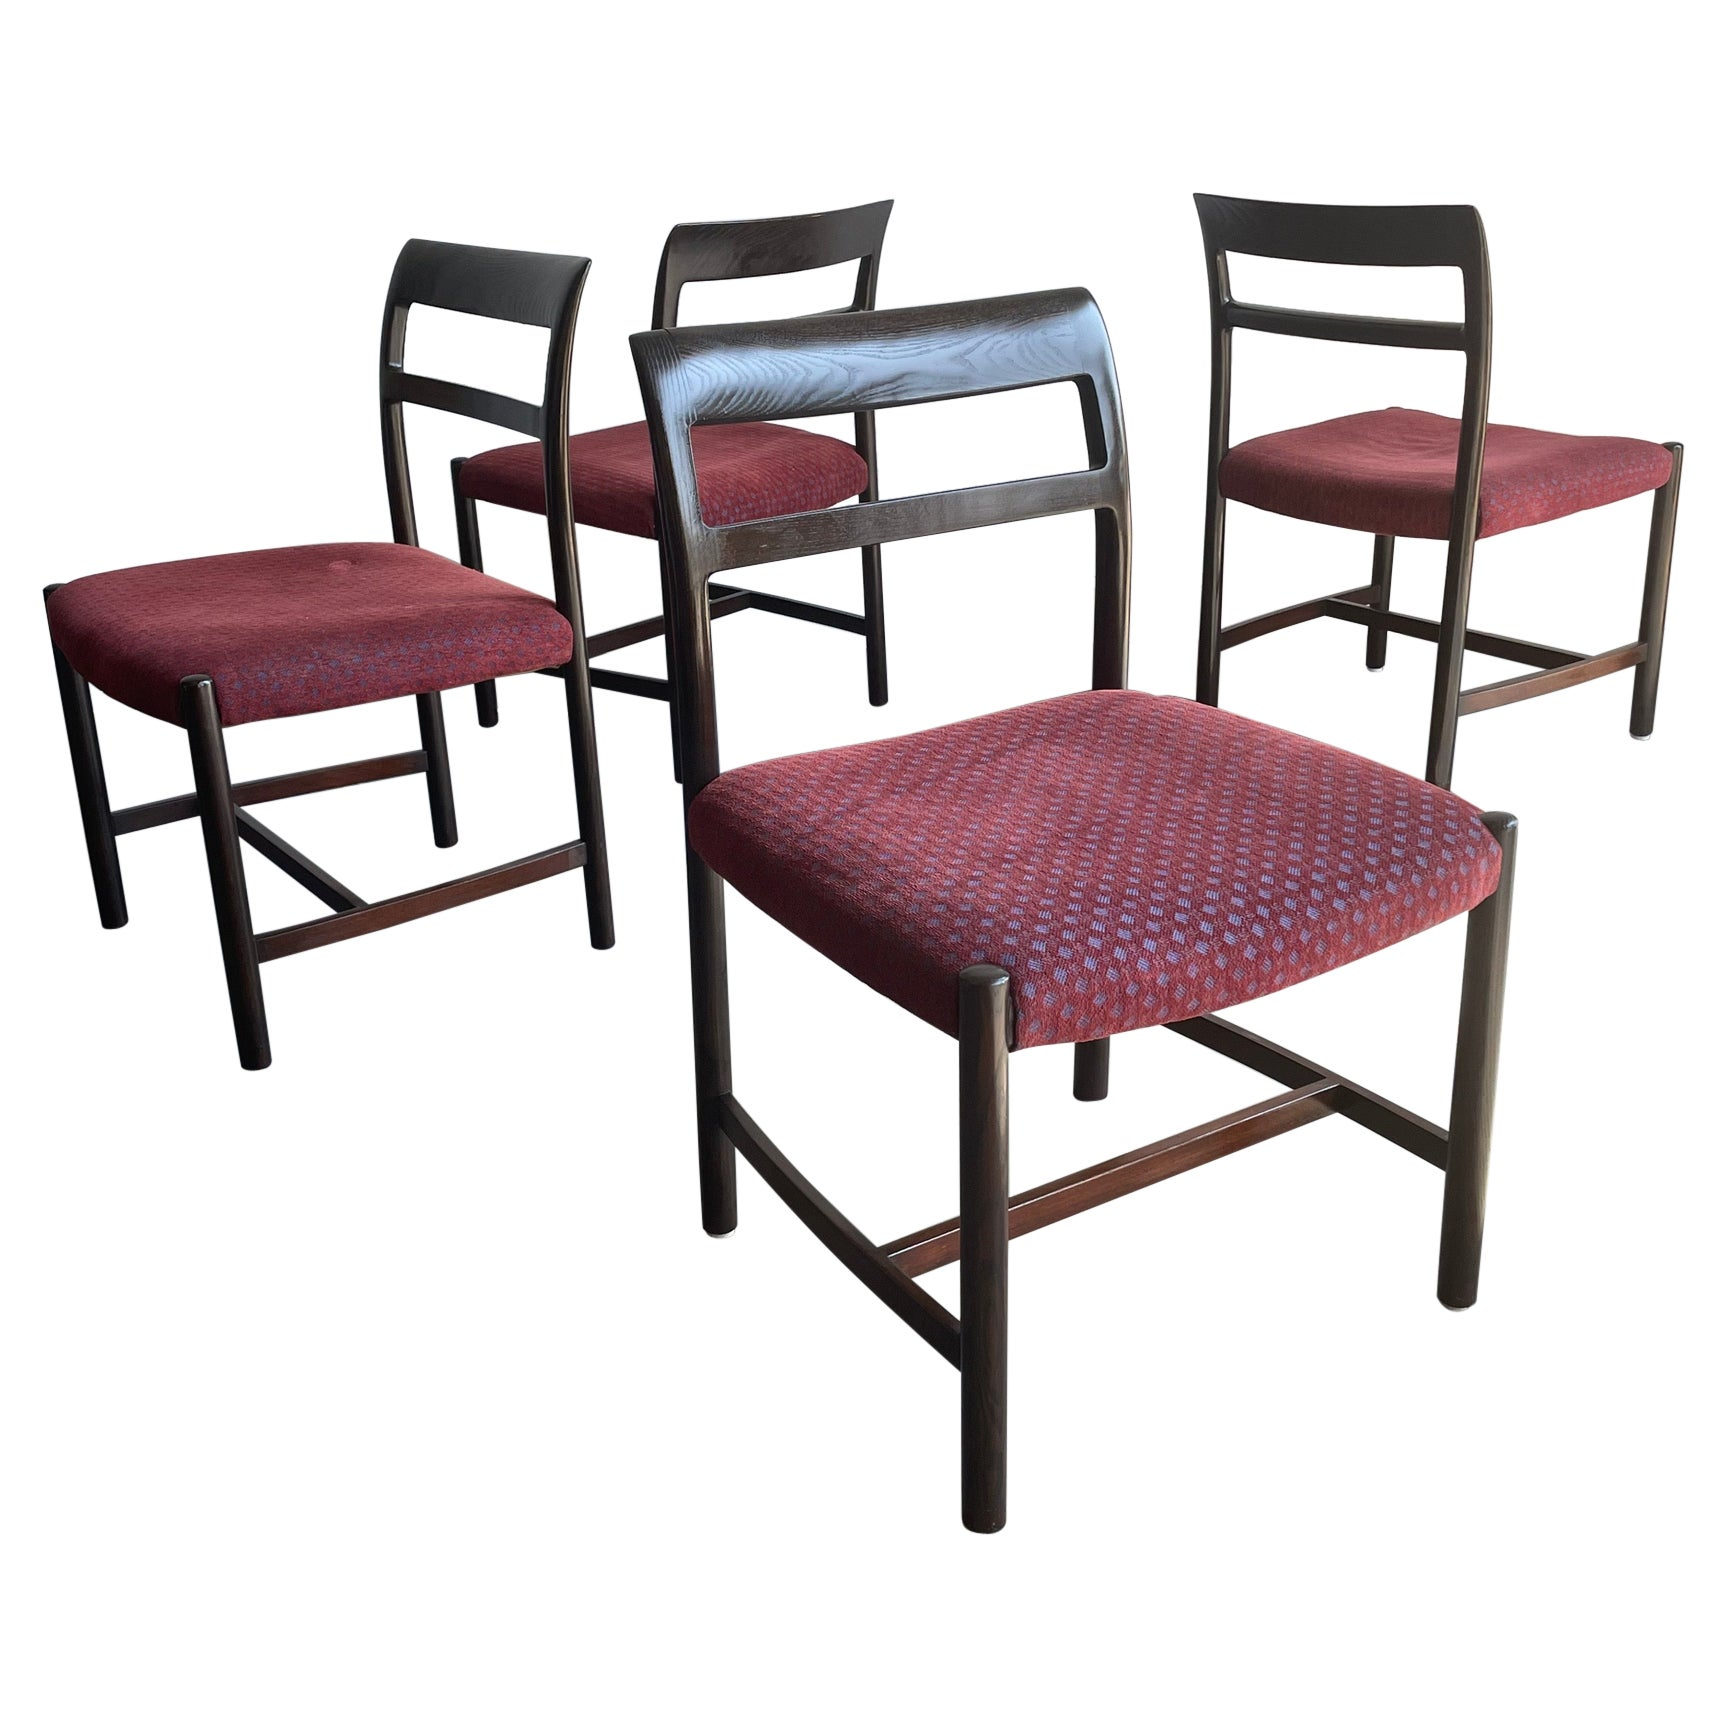 Roger Sprunger for Dunbar Side Chairs